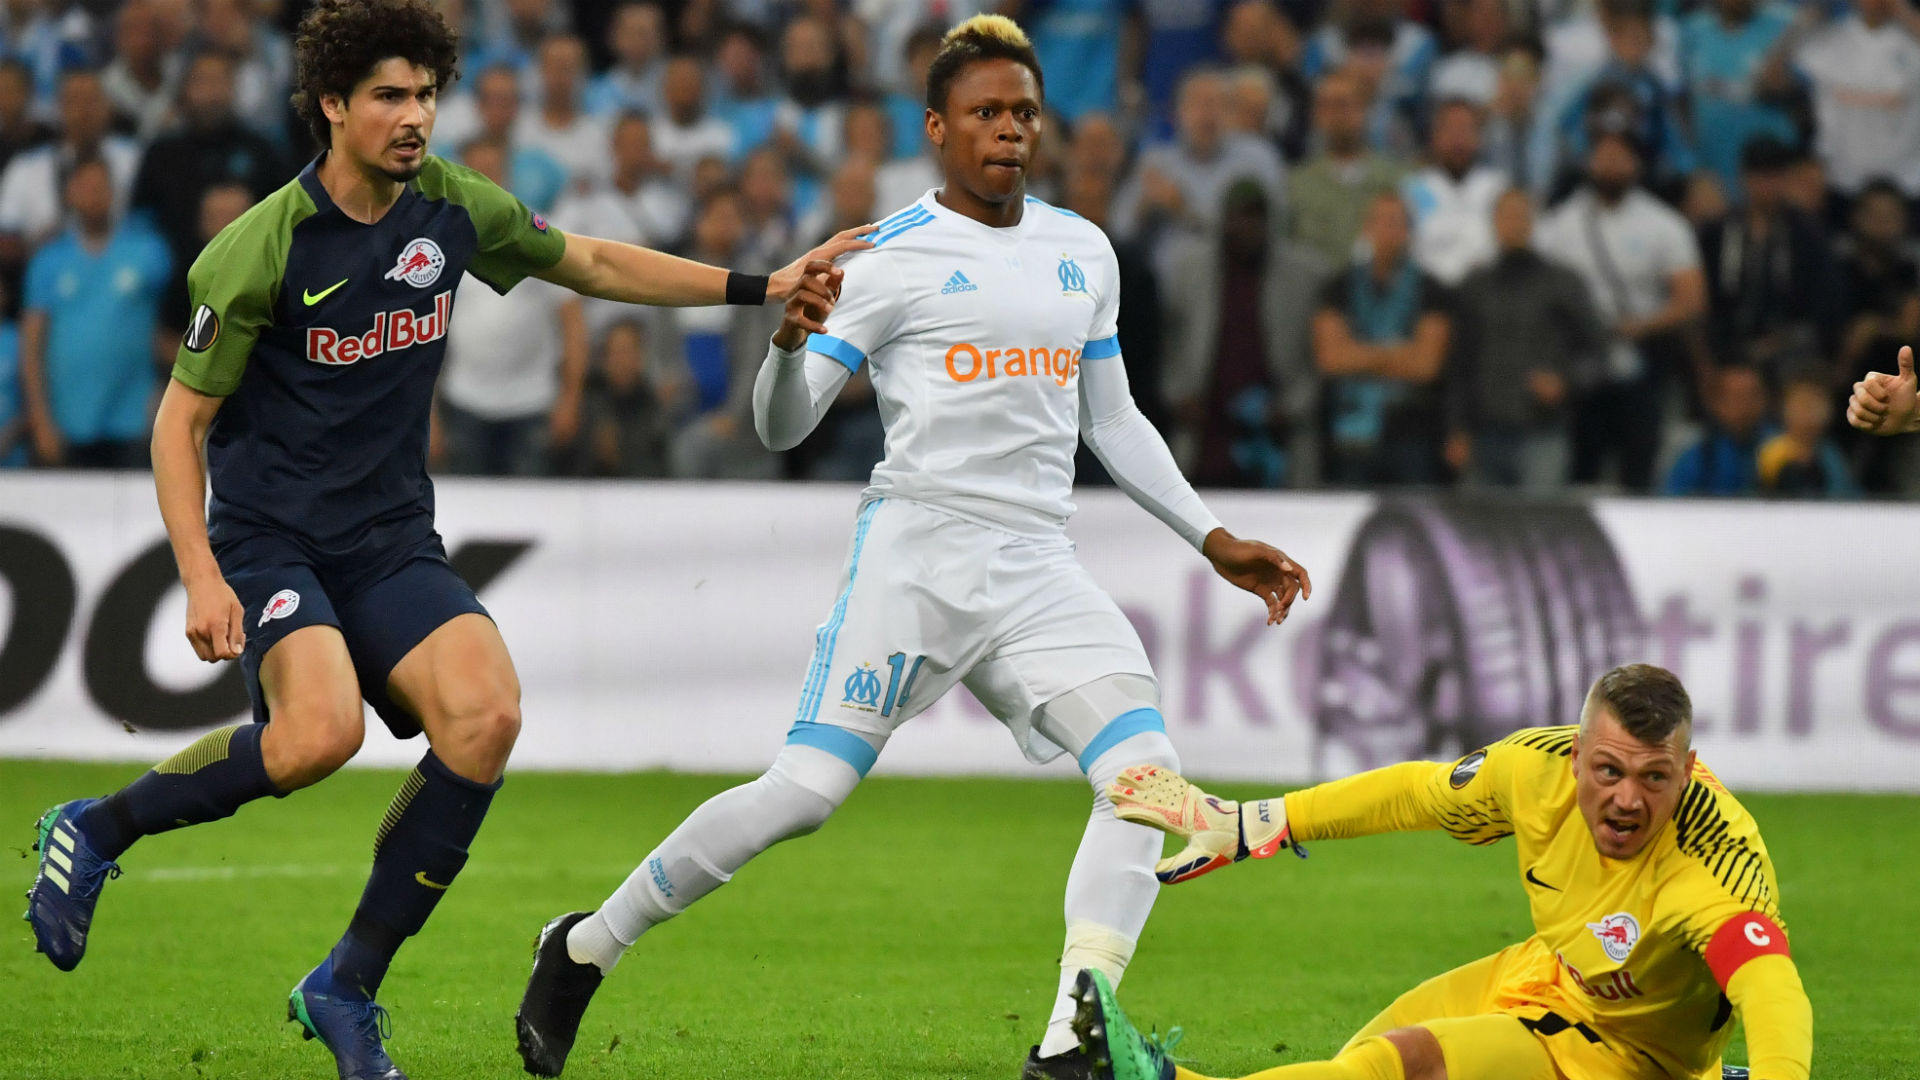 Marseille vs. Red Bull Salzburg live stream info, TV channel